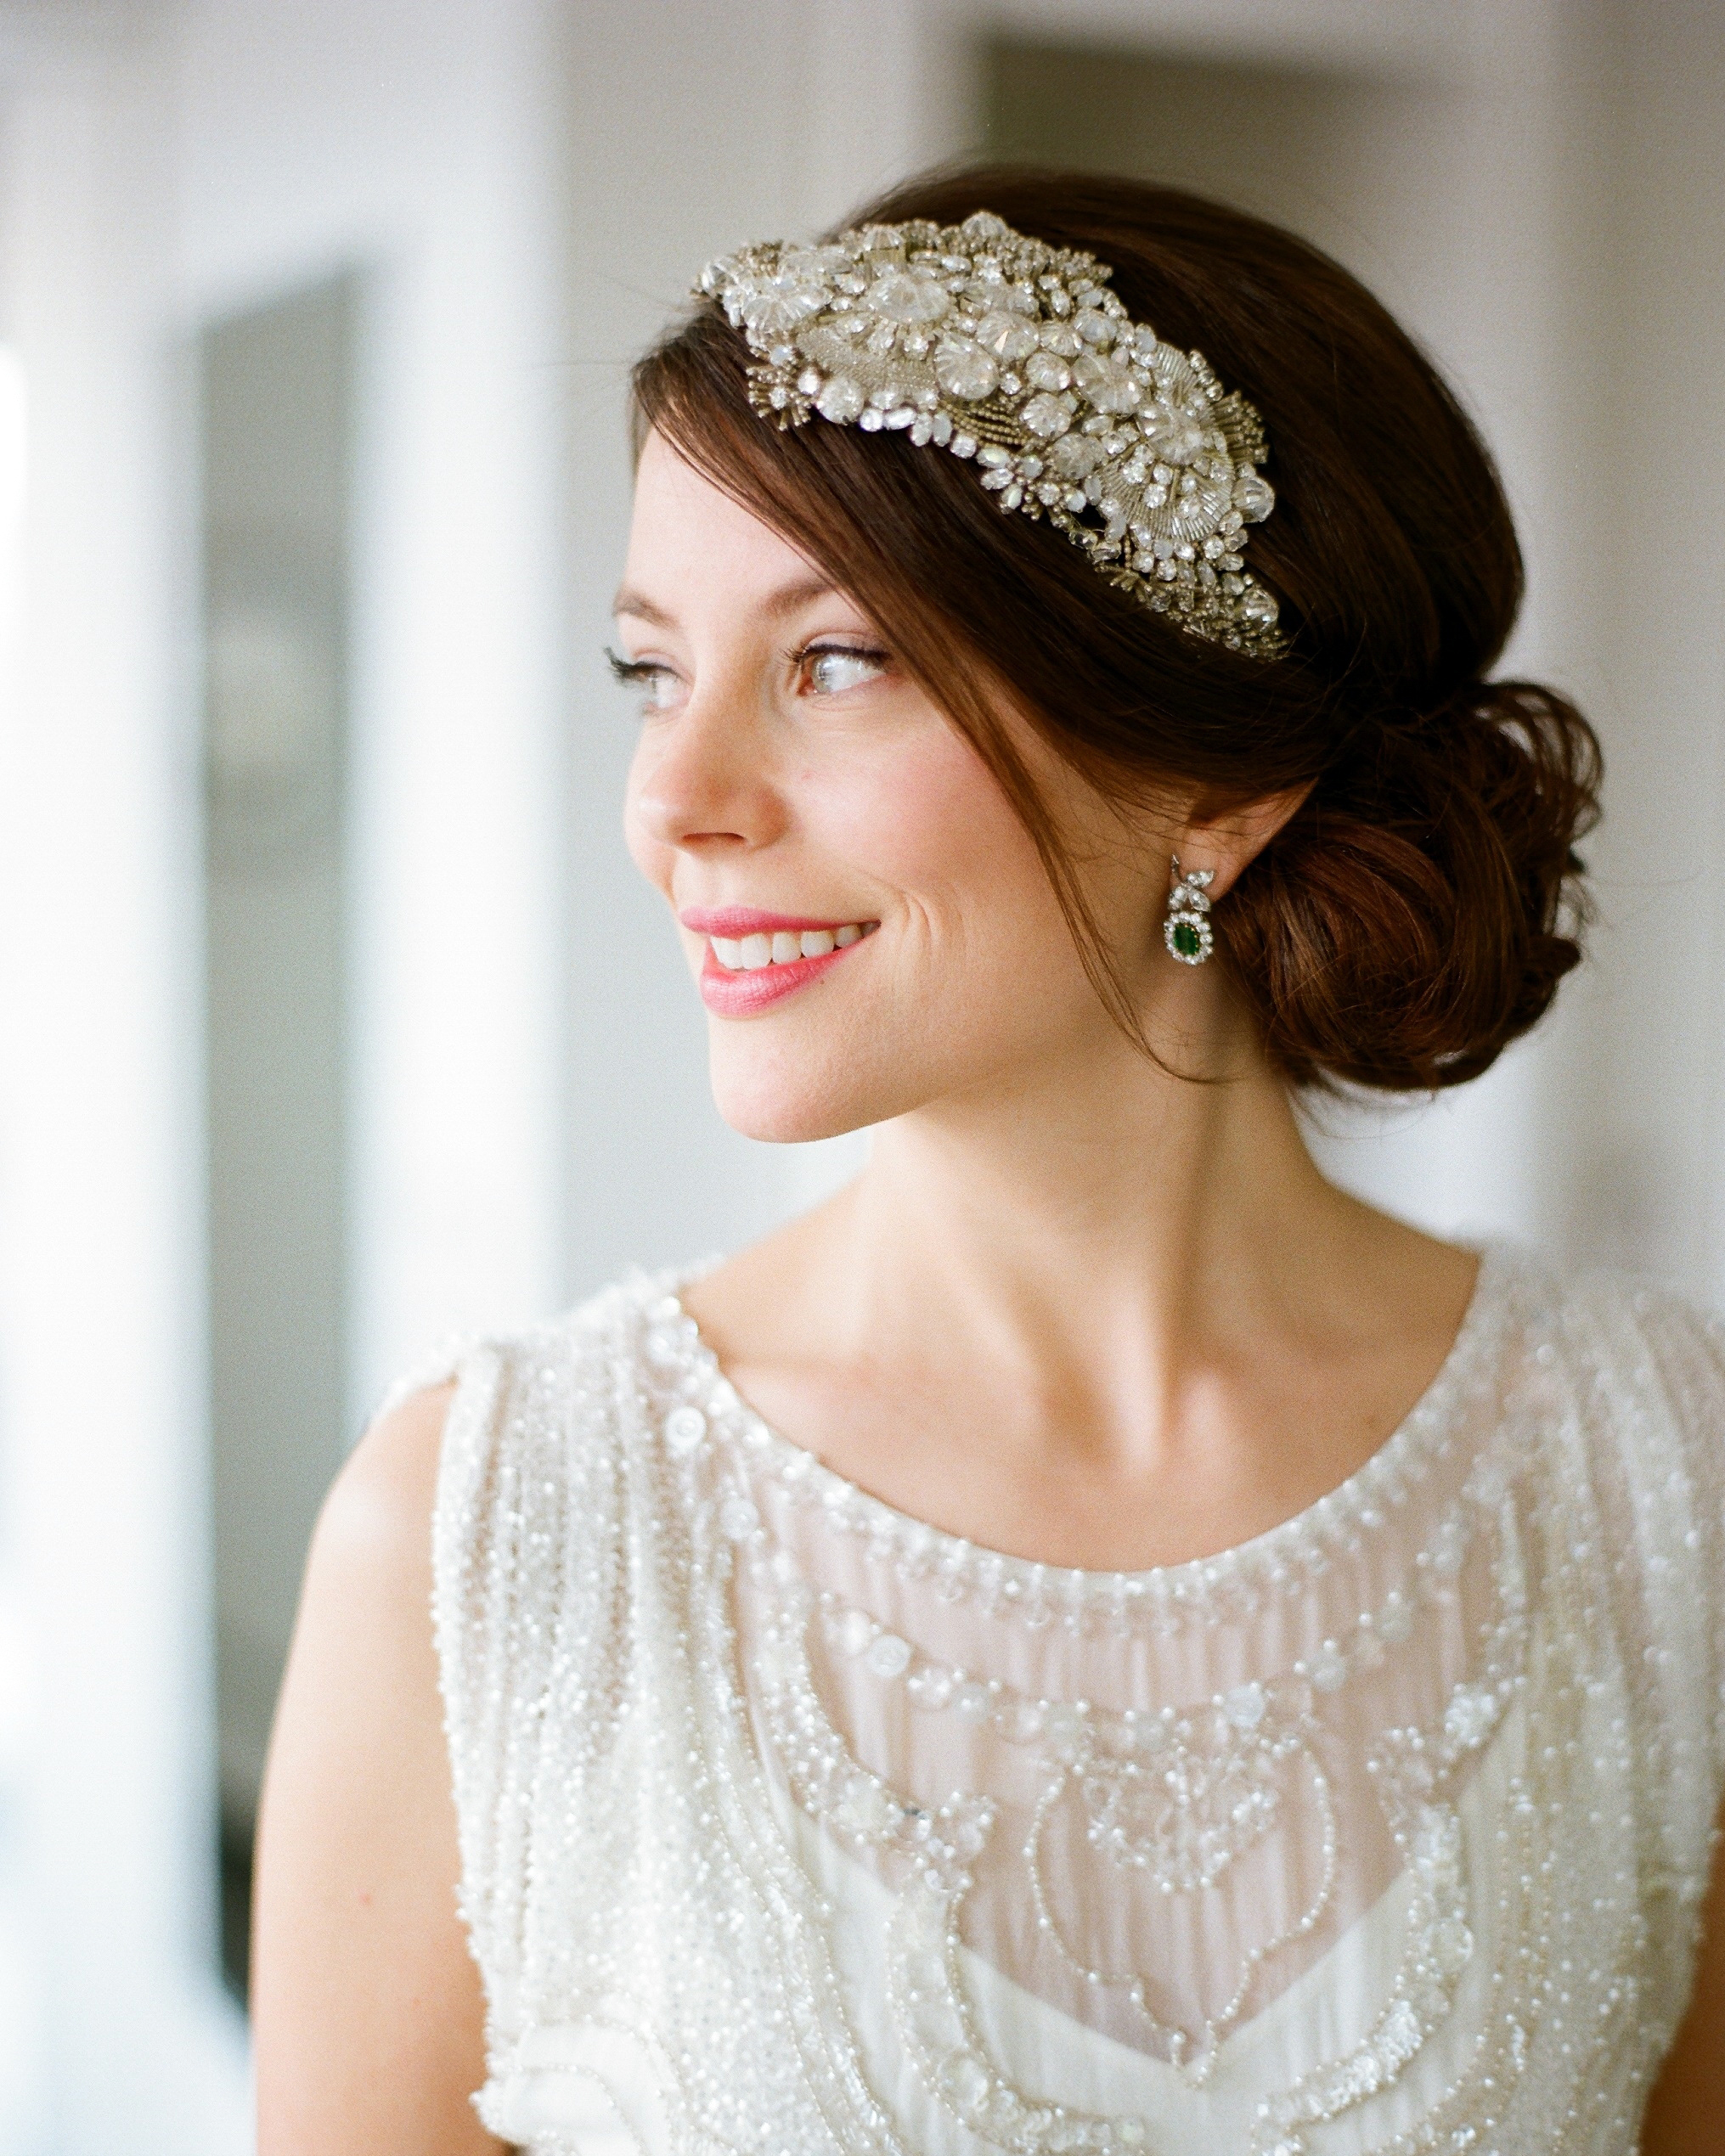 3 Things You Should Be Doing to Get Healthy Hair for Your Wedding